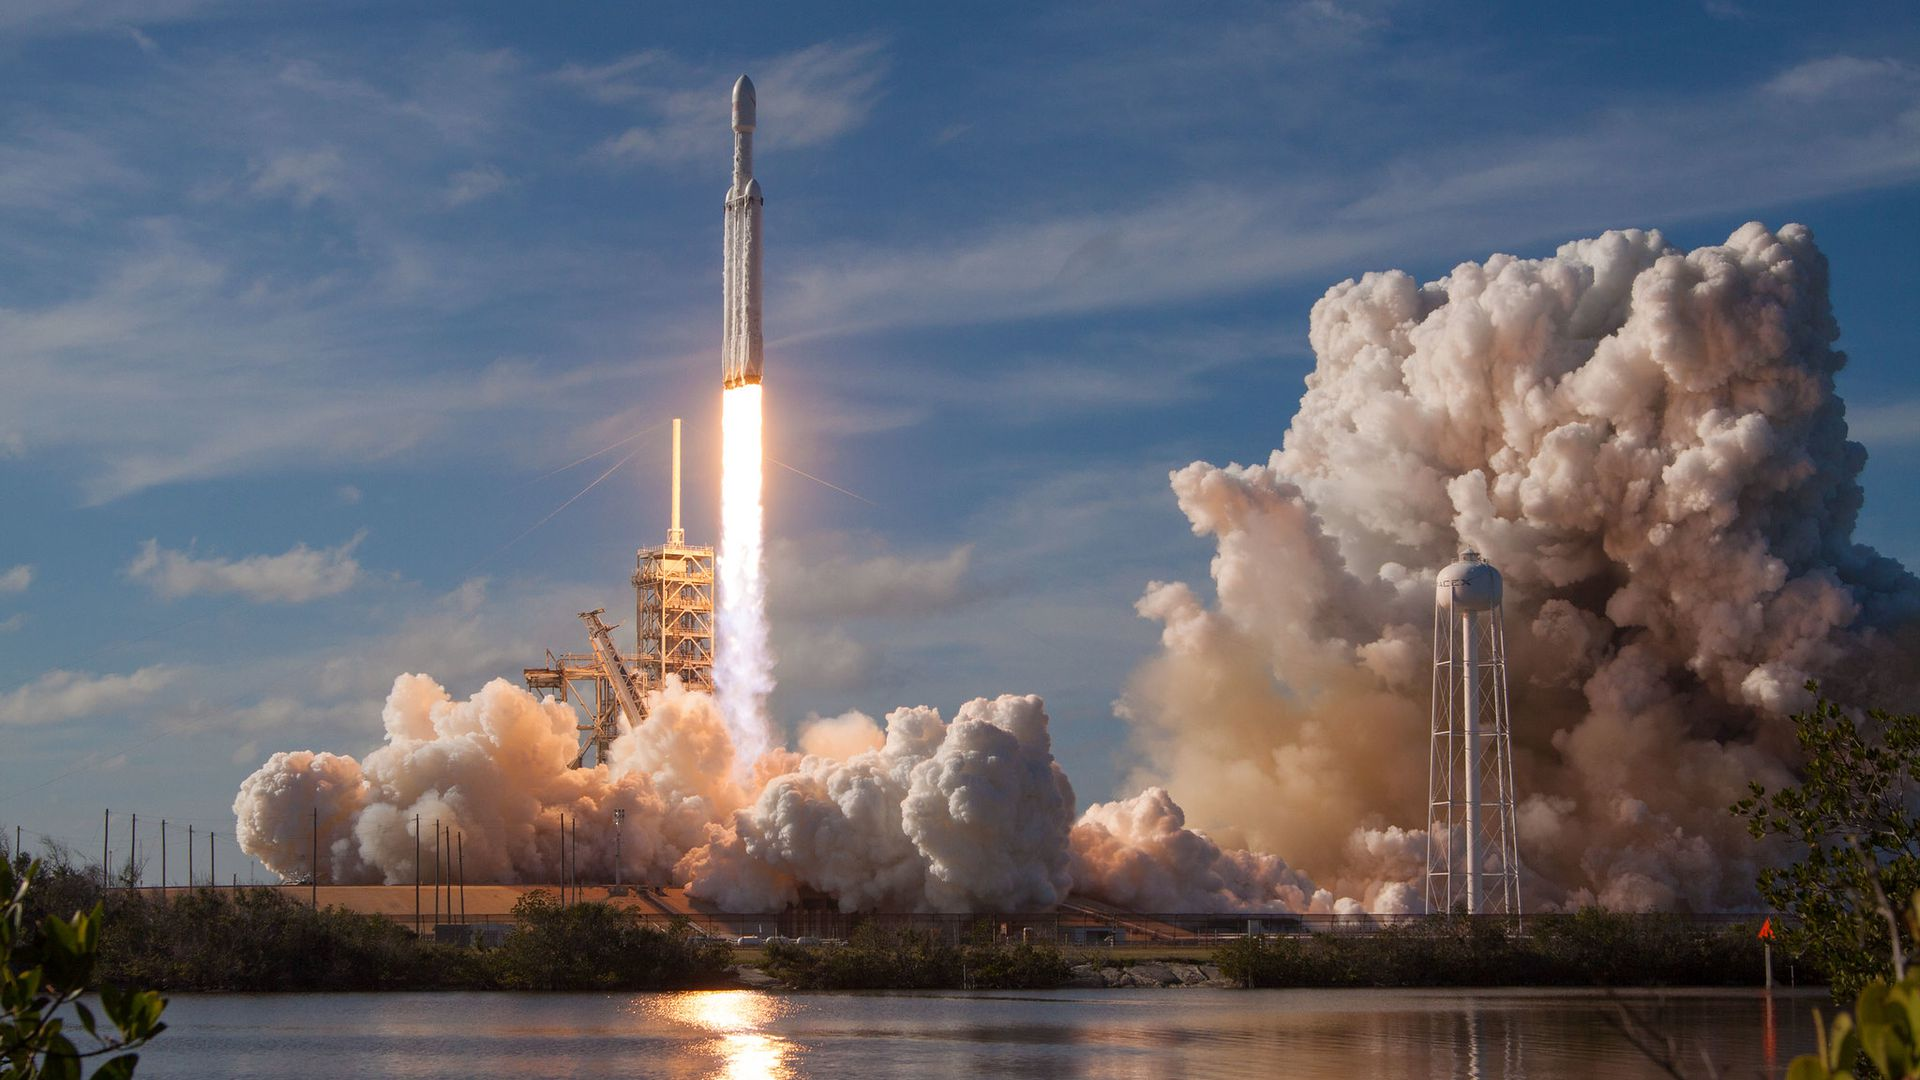 Falcon Heavy rocket launches from Cape Canaveral on Feb. 6, 2018.